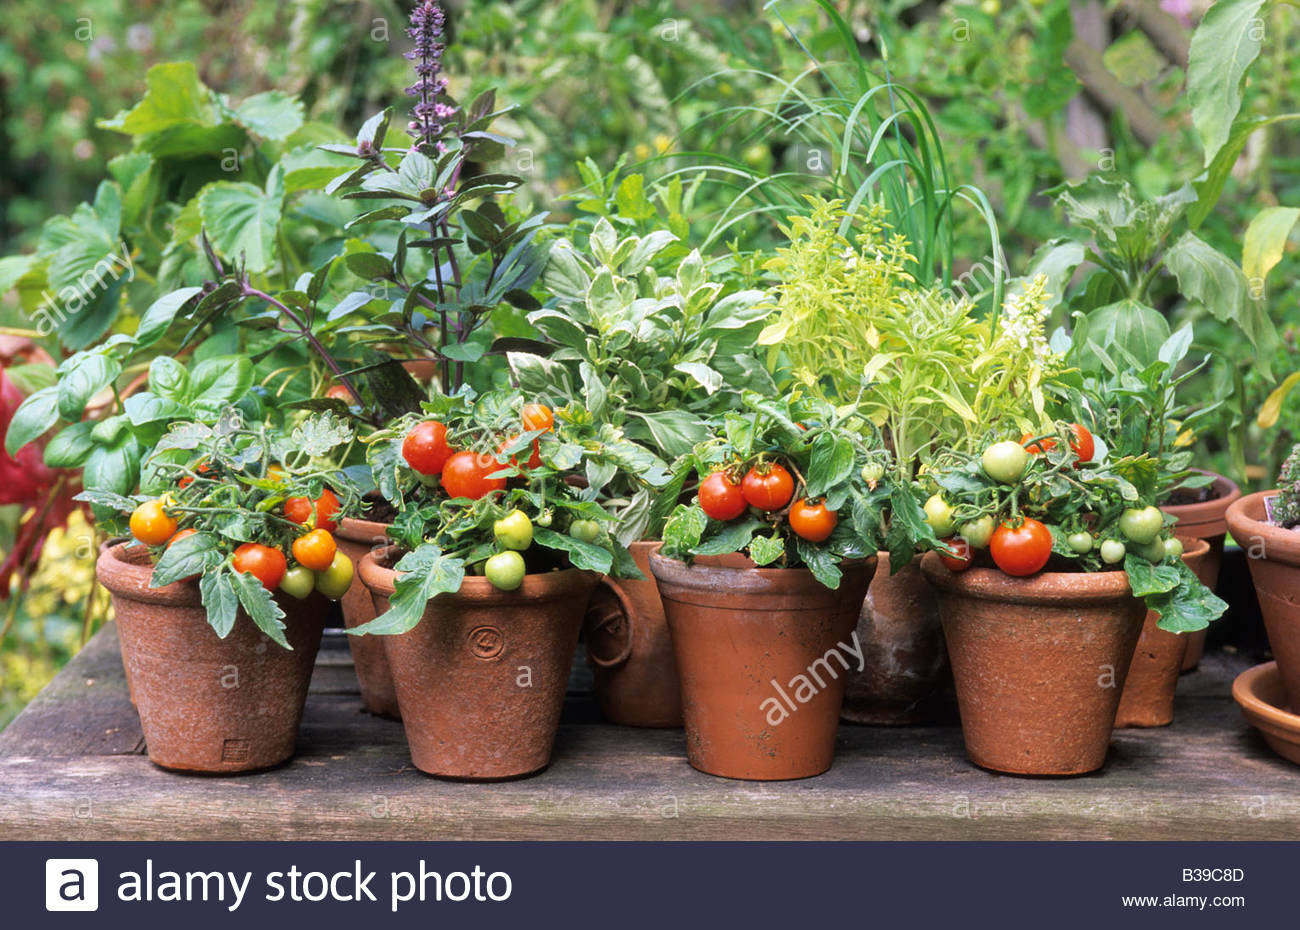 Pots of miniature dwarf tomatoes micro tom and mixed basils including stock photo royalty free - How to grow potted tomatoes ...